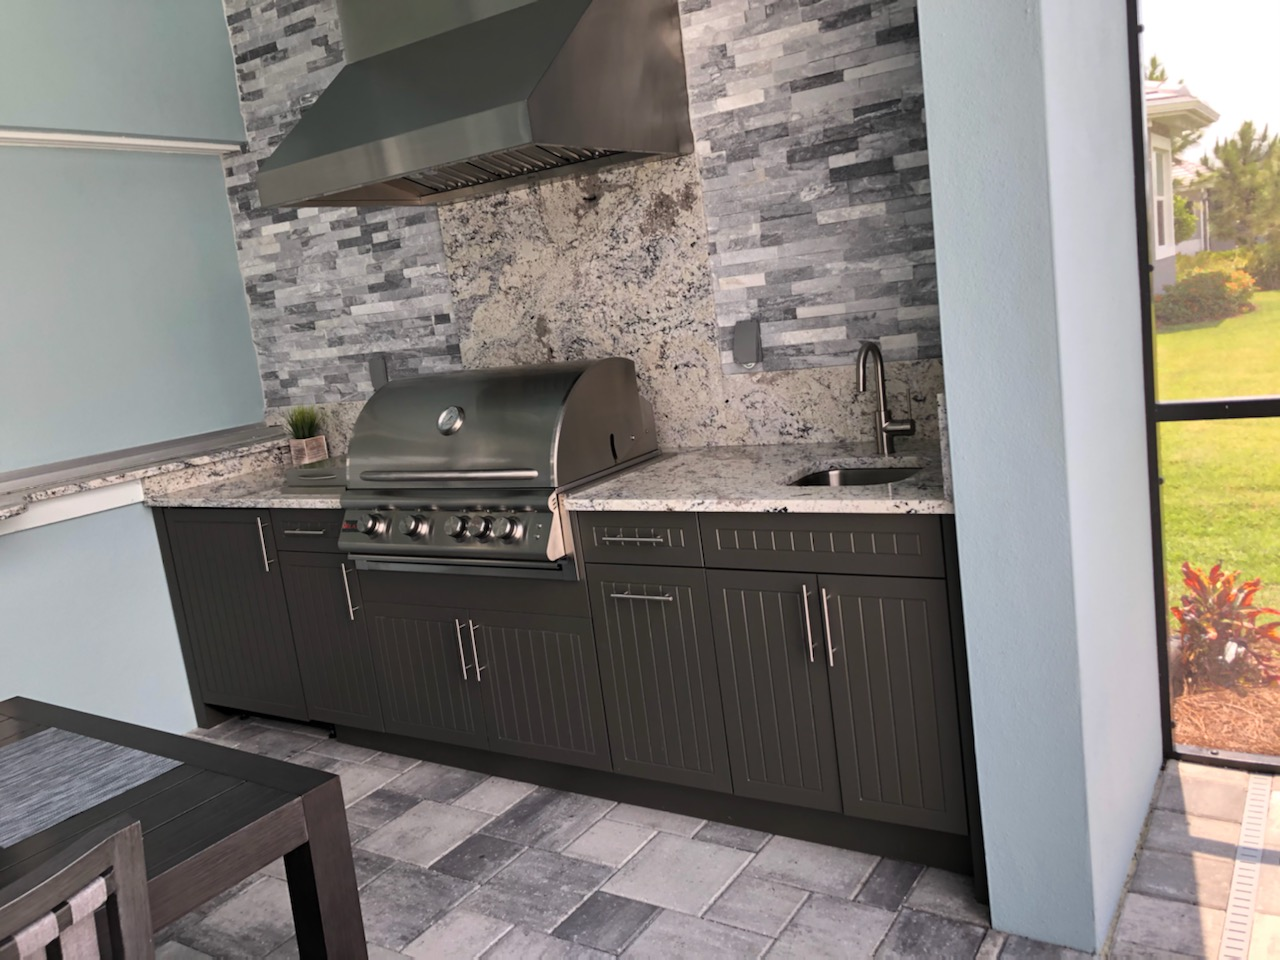 Polymer Cabinetry